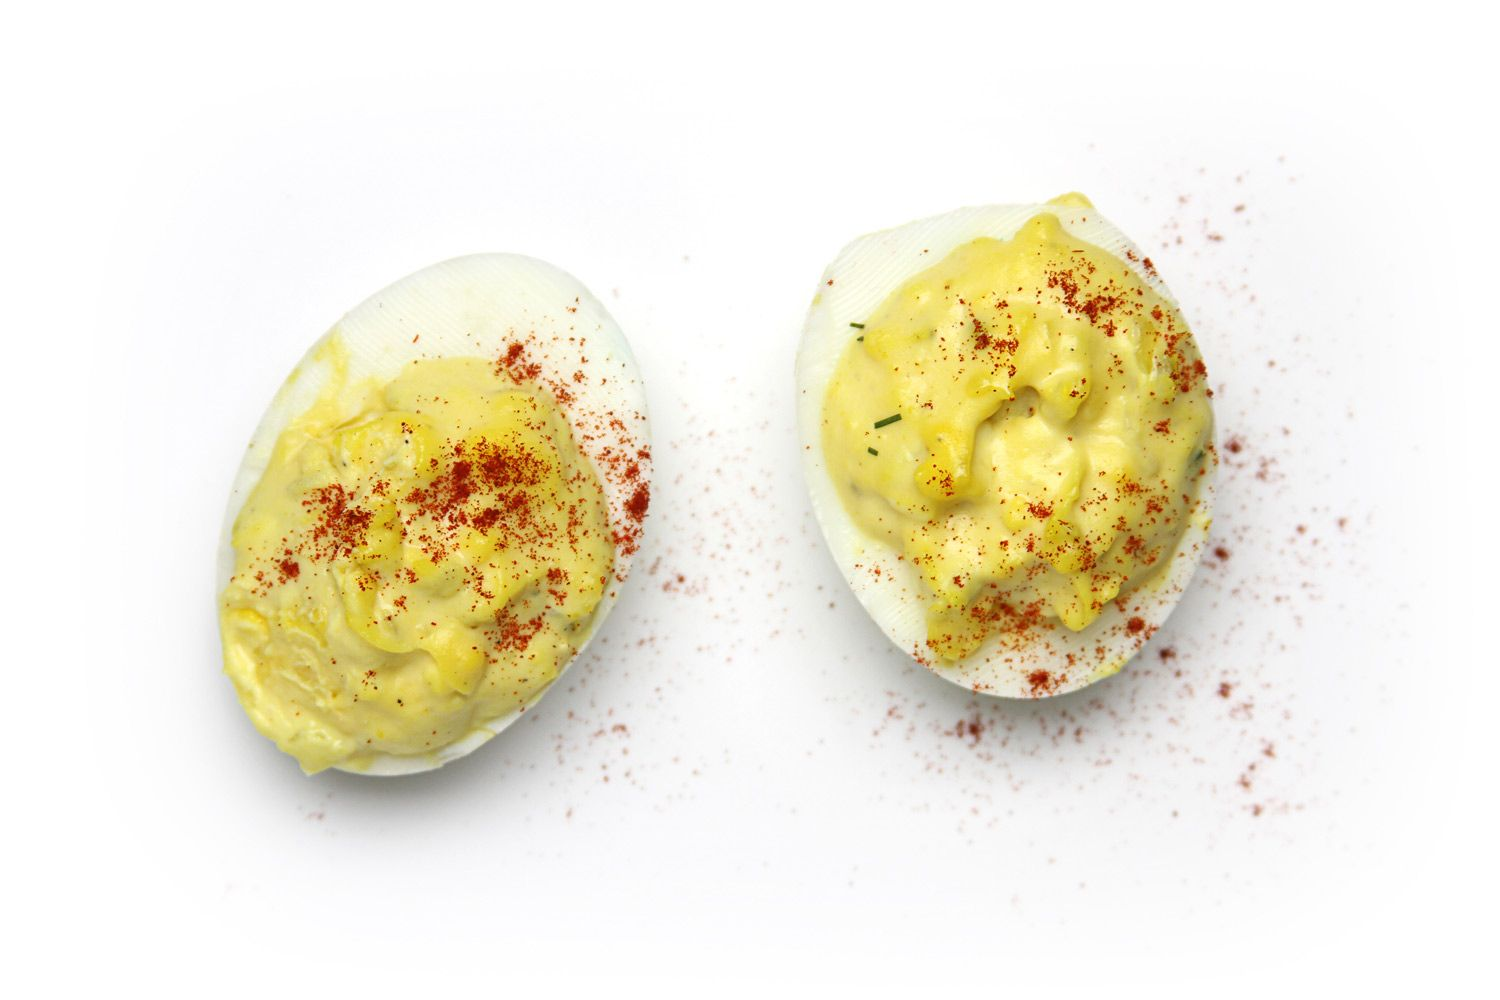 How to Make Deviled Eggs | 5 Unique Recipes